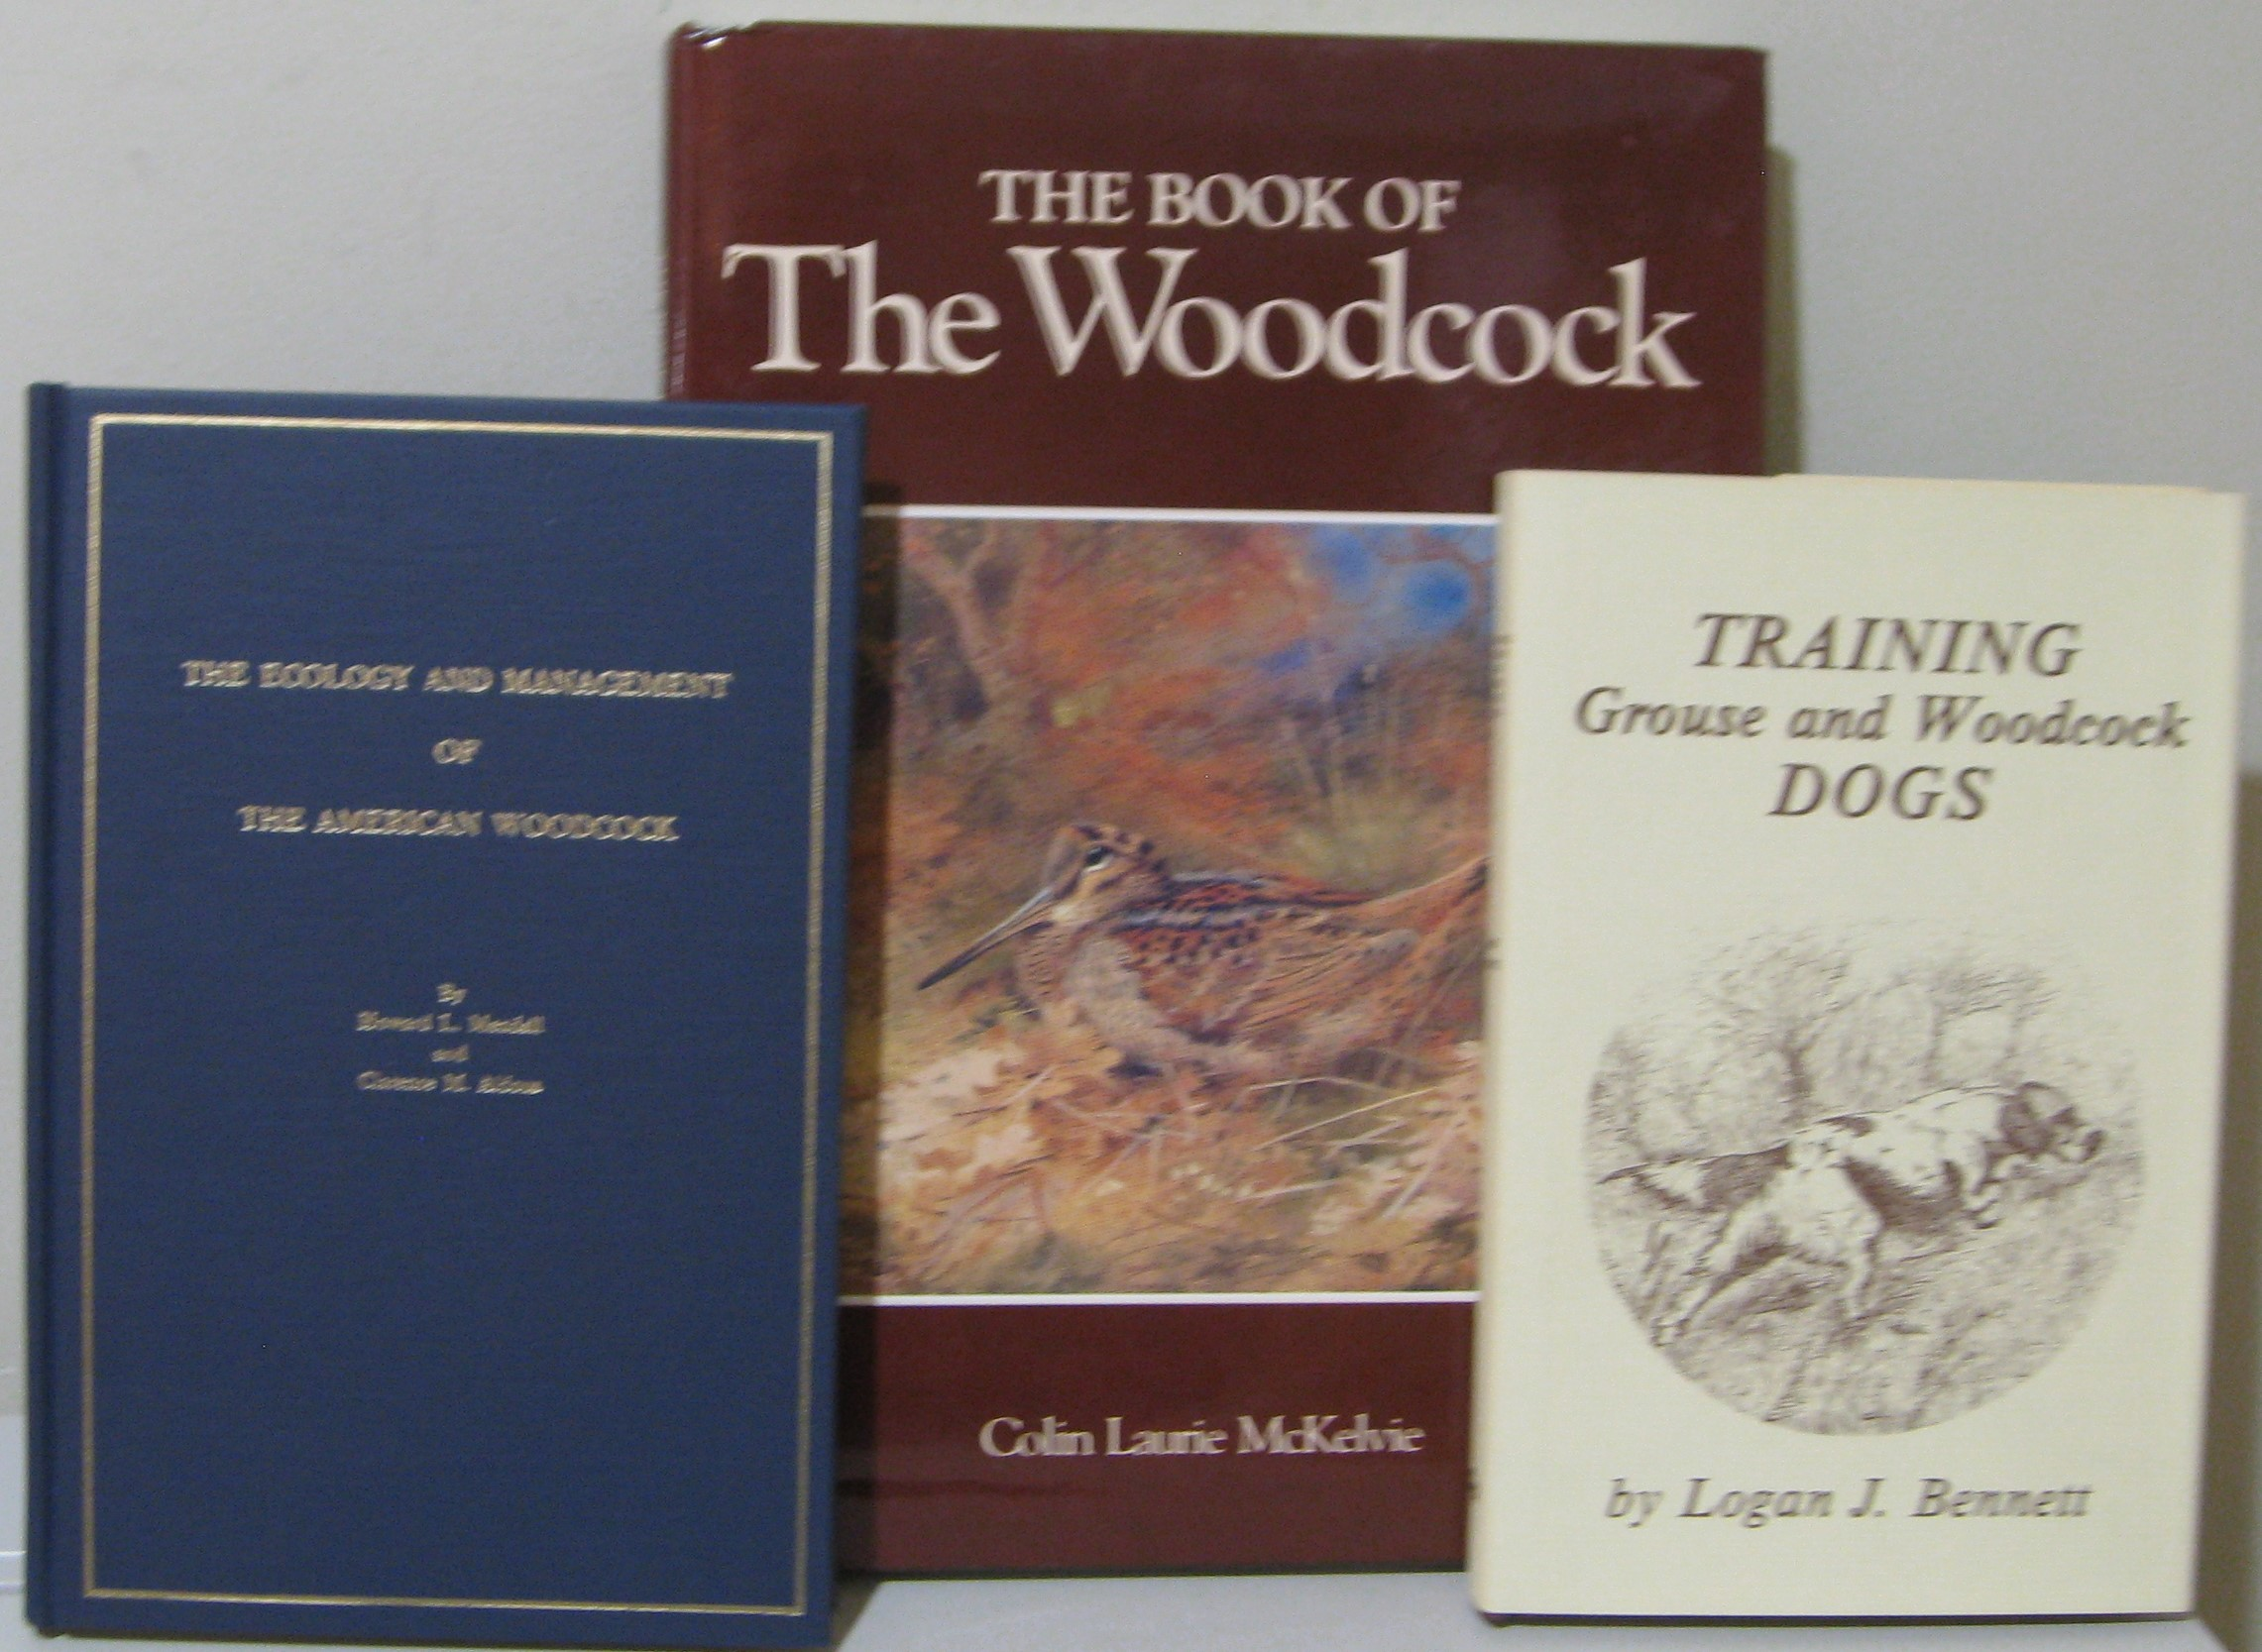 Image for THE ECOLOGY & MANAGEMENT OF THE AMERICAN WOODCOCK; TRAINING GROUSE AND WOODCOCK DOGS; & THE BOOK OF THE WOODCOCK -